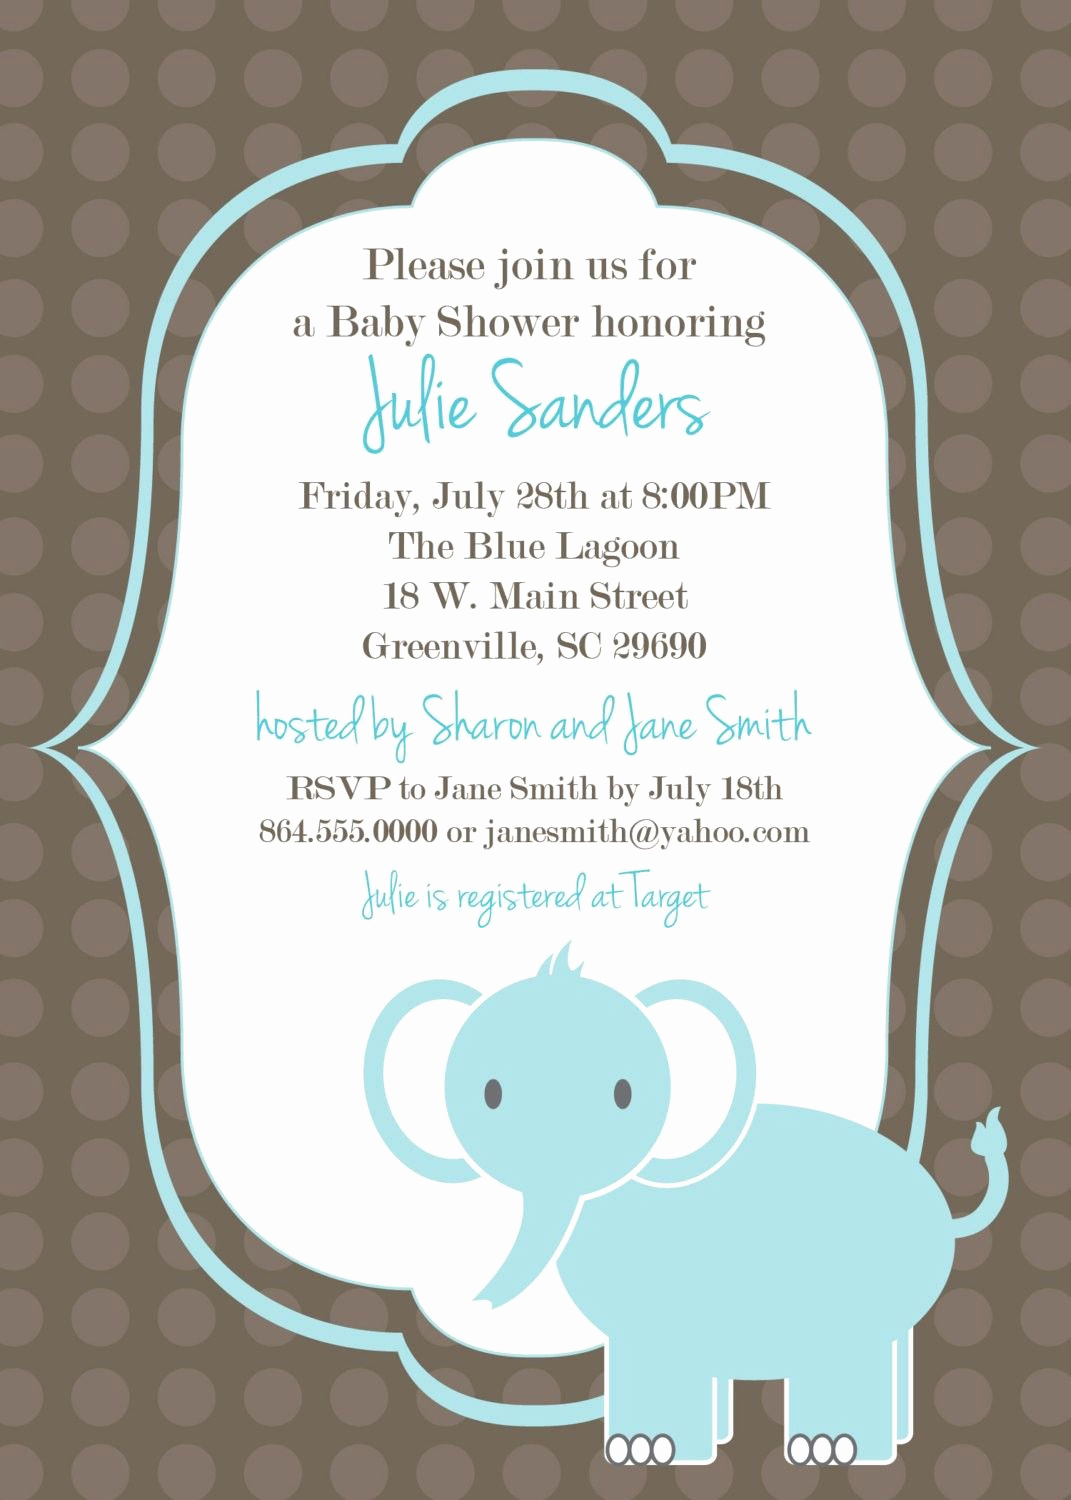 Baby Shower Invitation Font Luxury Free Printable Baby Shower Invitation Templates